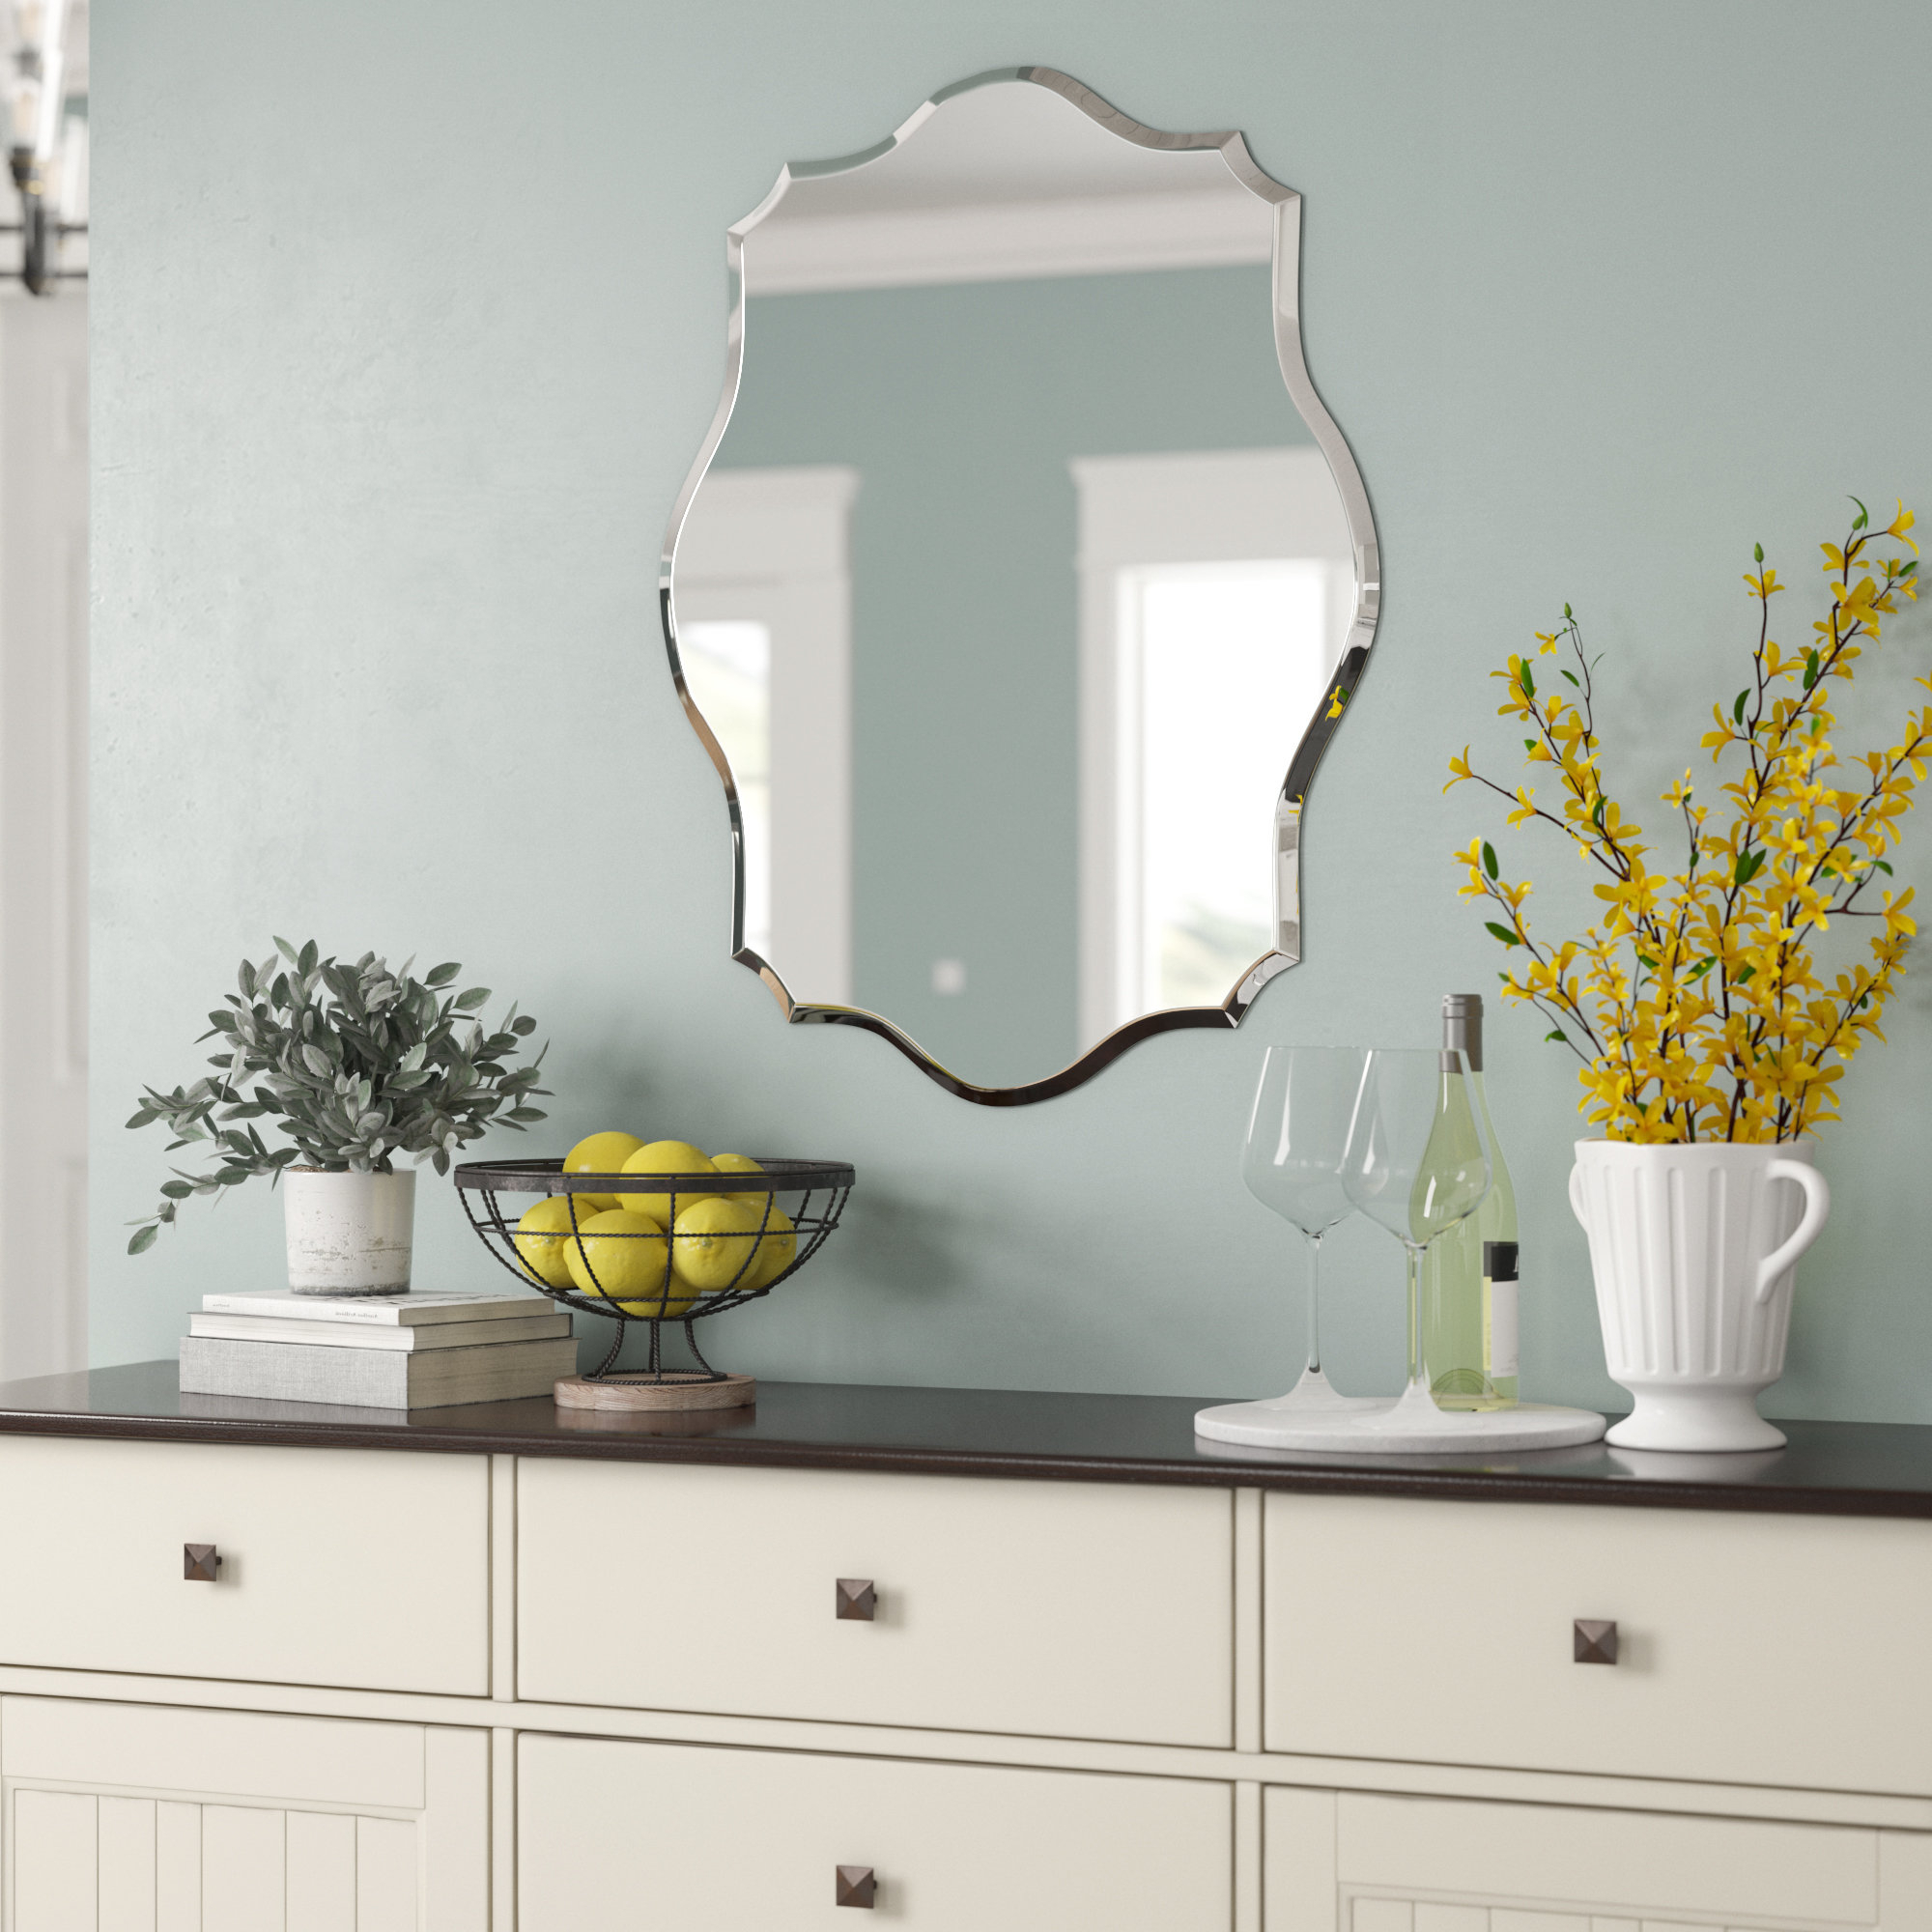 Guidinha Modern & Contemporary Accent Mirror Regarding Well Known Morlan Accent Mirrors (View 4 of 20)